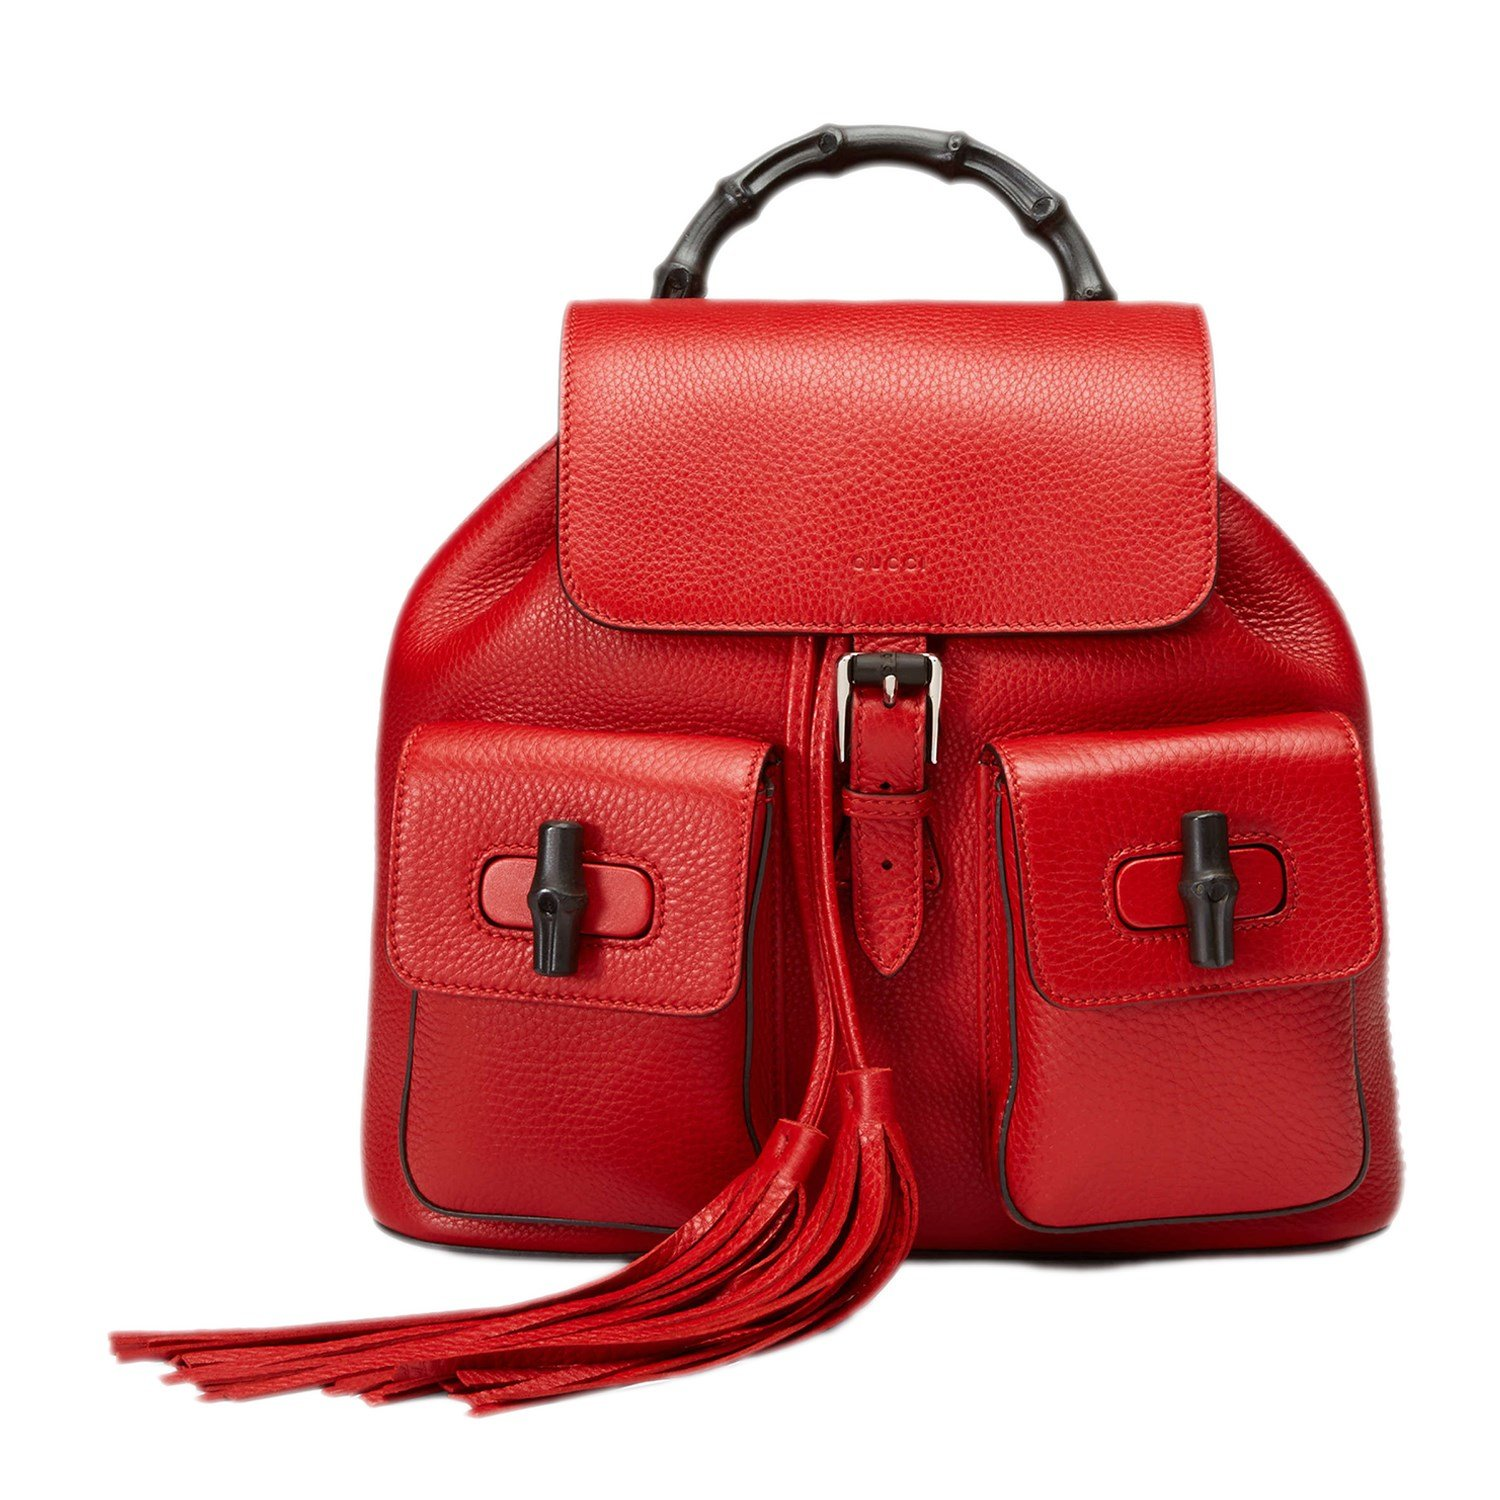 3ffe4eb1fc6ca Gucci Bamboo Leather Backpack 370833 6433 Red  Amazon.ca  Clothing    Accessories